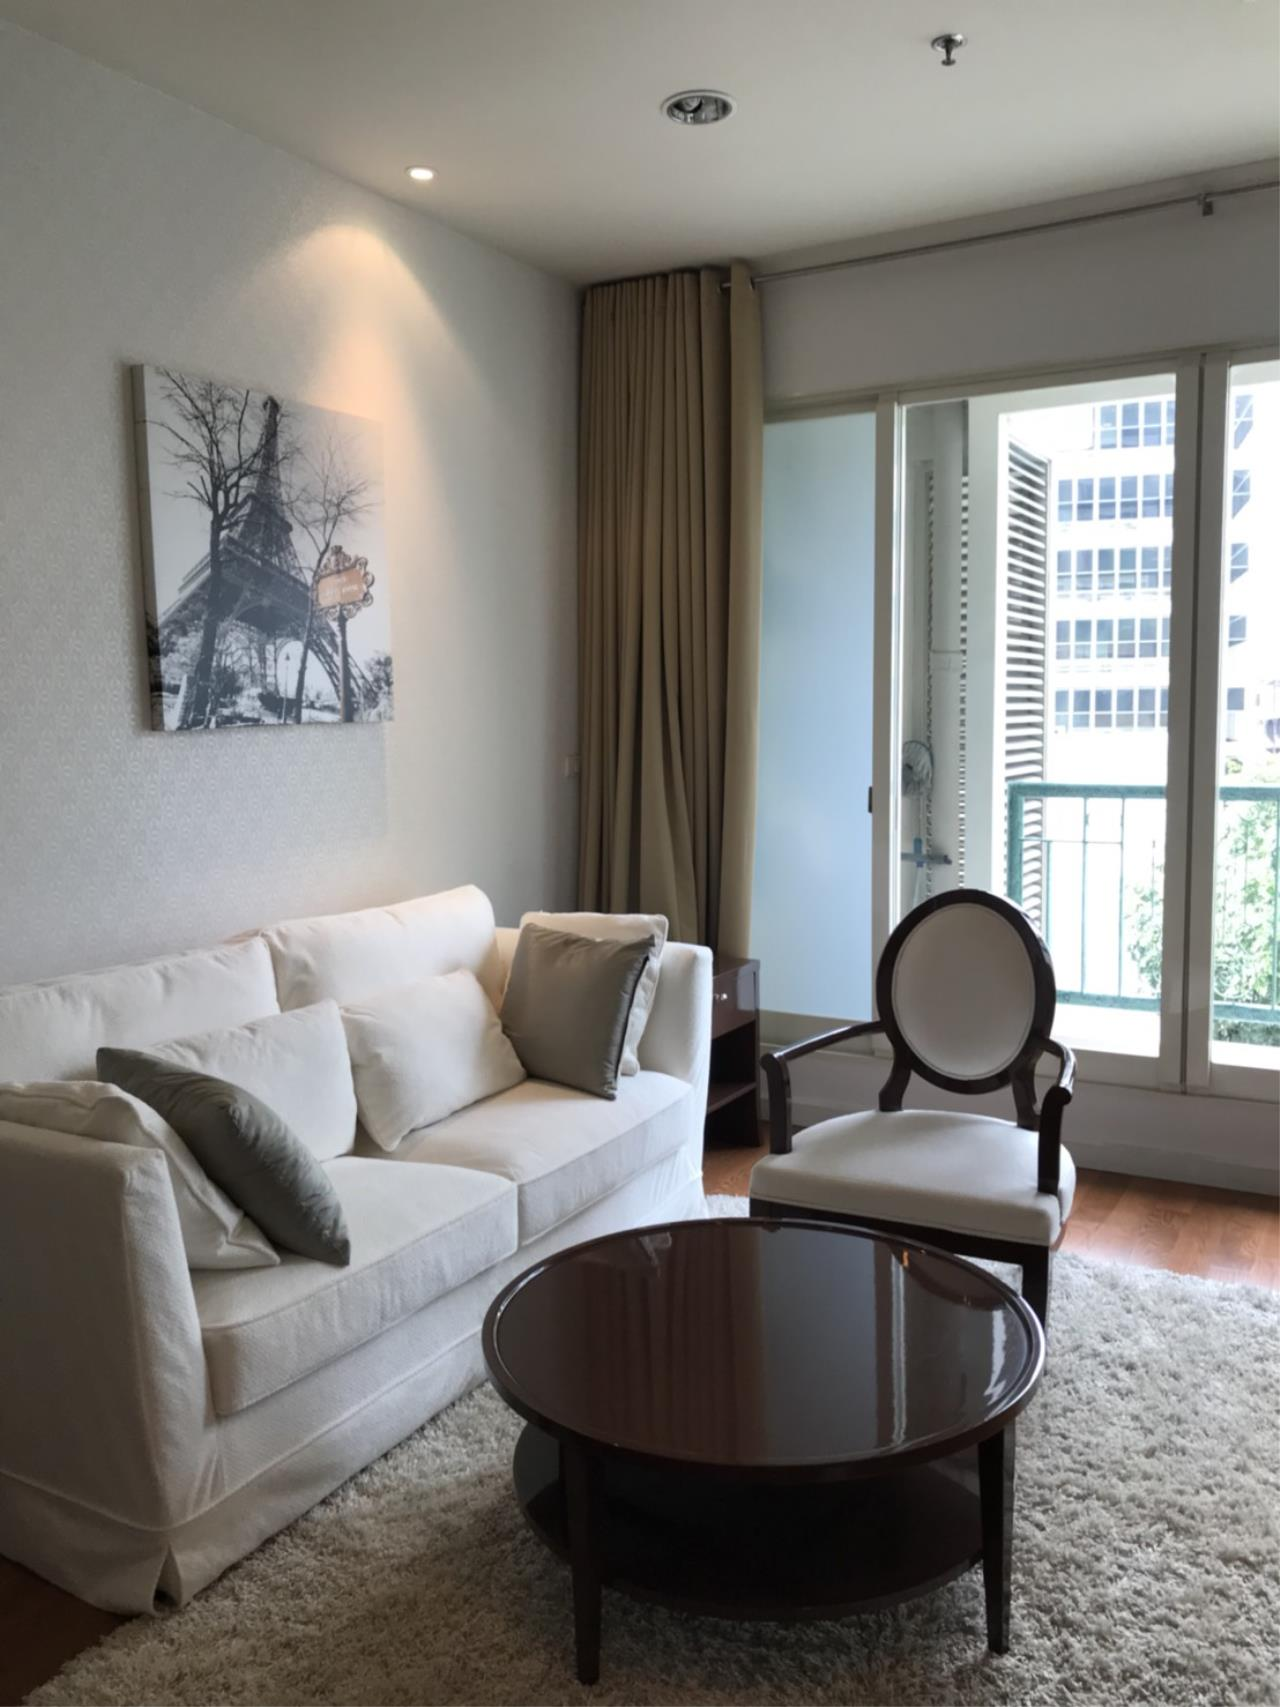 Agent - Aditep Pramorntat Agency's CONDO FOR RENT: THE ADDRESS CHIDLOM, 1 BEDROOM, 1BATHROOM, 56 SQM., FULLY FURNISHED 2